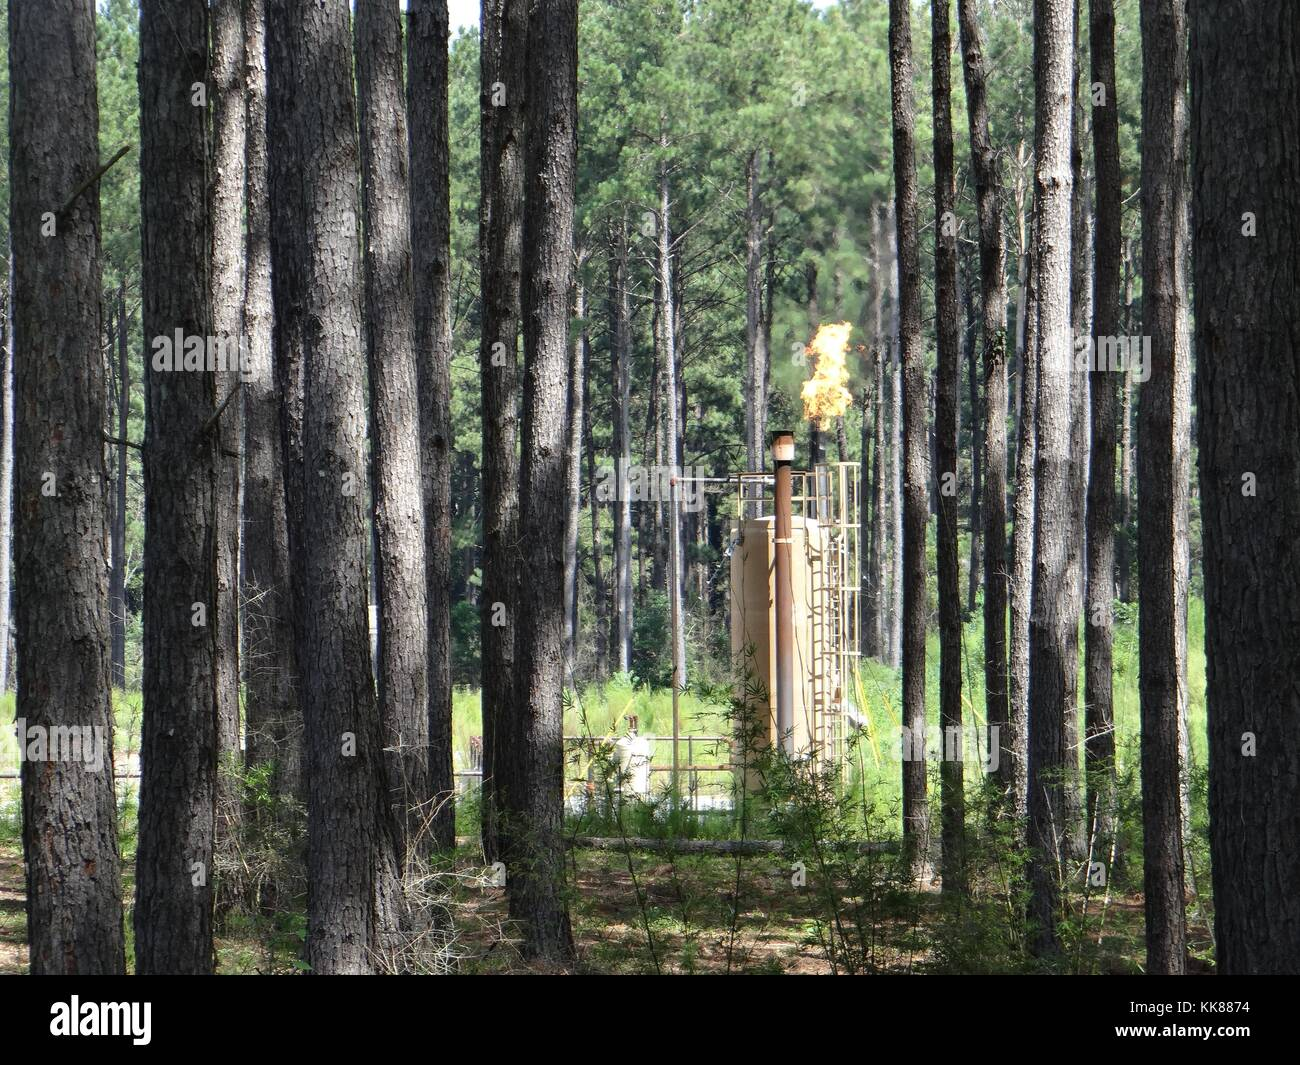 Wellpad in the Tuscaloosa Marine Shale in Liberty, Missouri, showing natural gas flare among trees. Sometimes, often - Stock Image